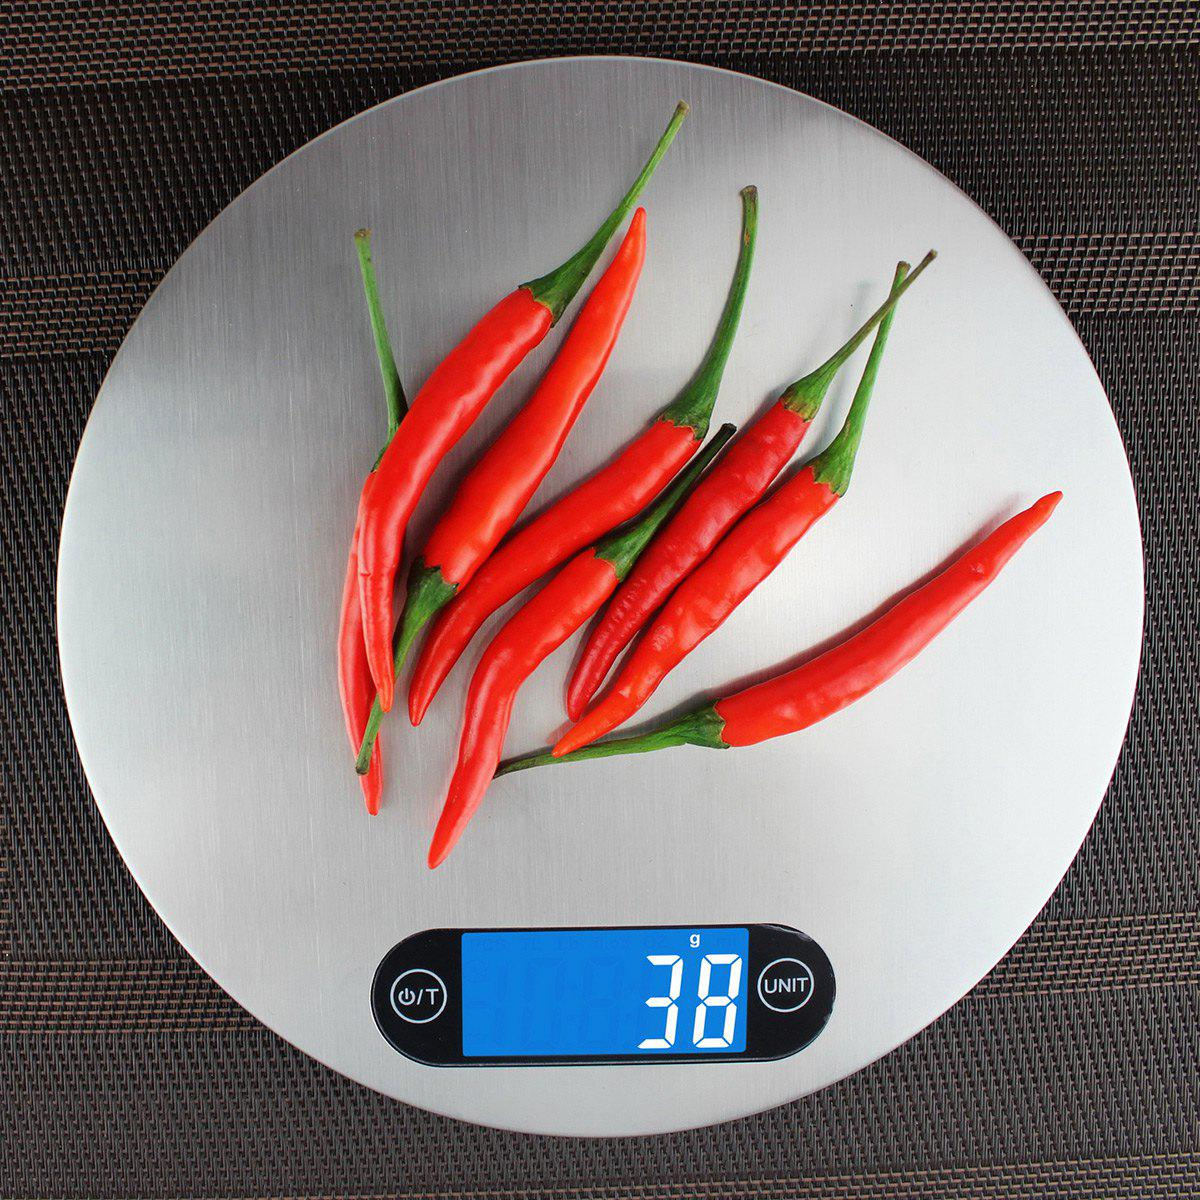 Kitchen Measure Tool Digital 5KG/1g Electronic Scale - SILVER 20*20*1.6CM(5KG/1G)